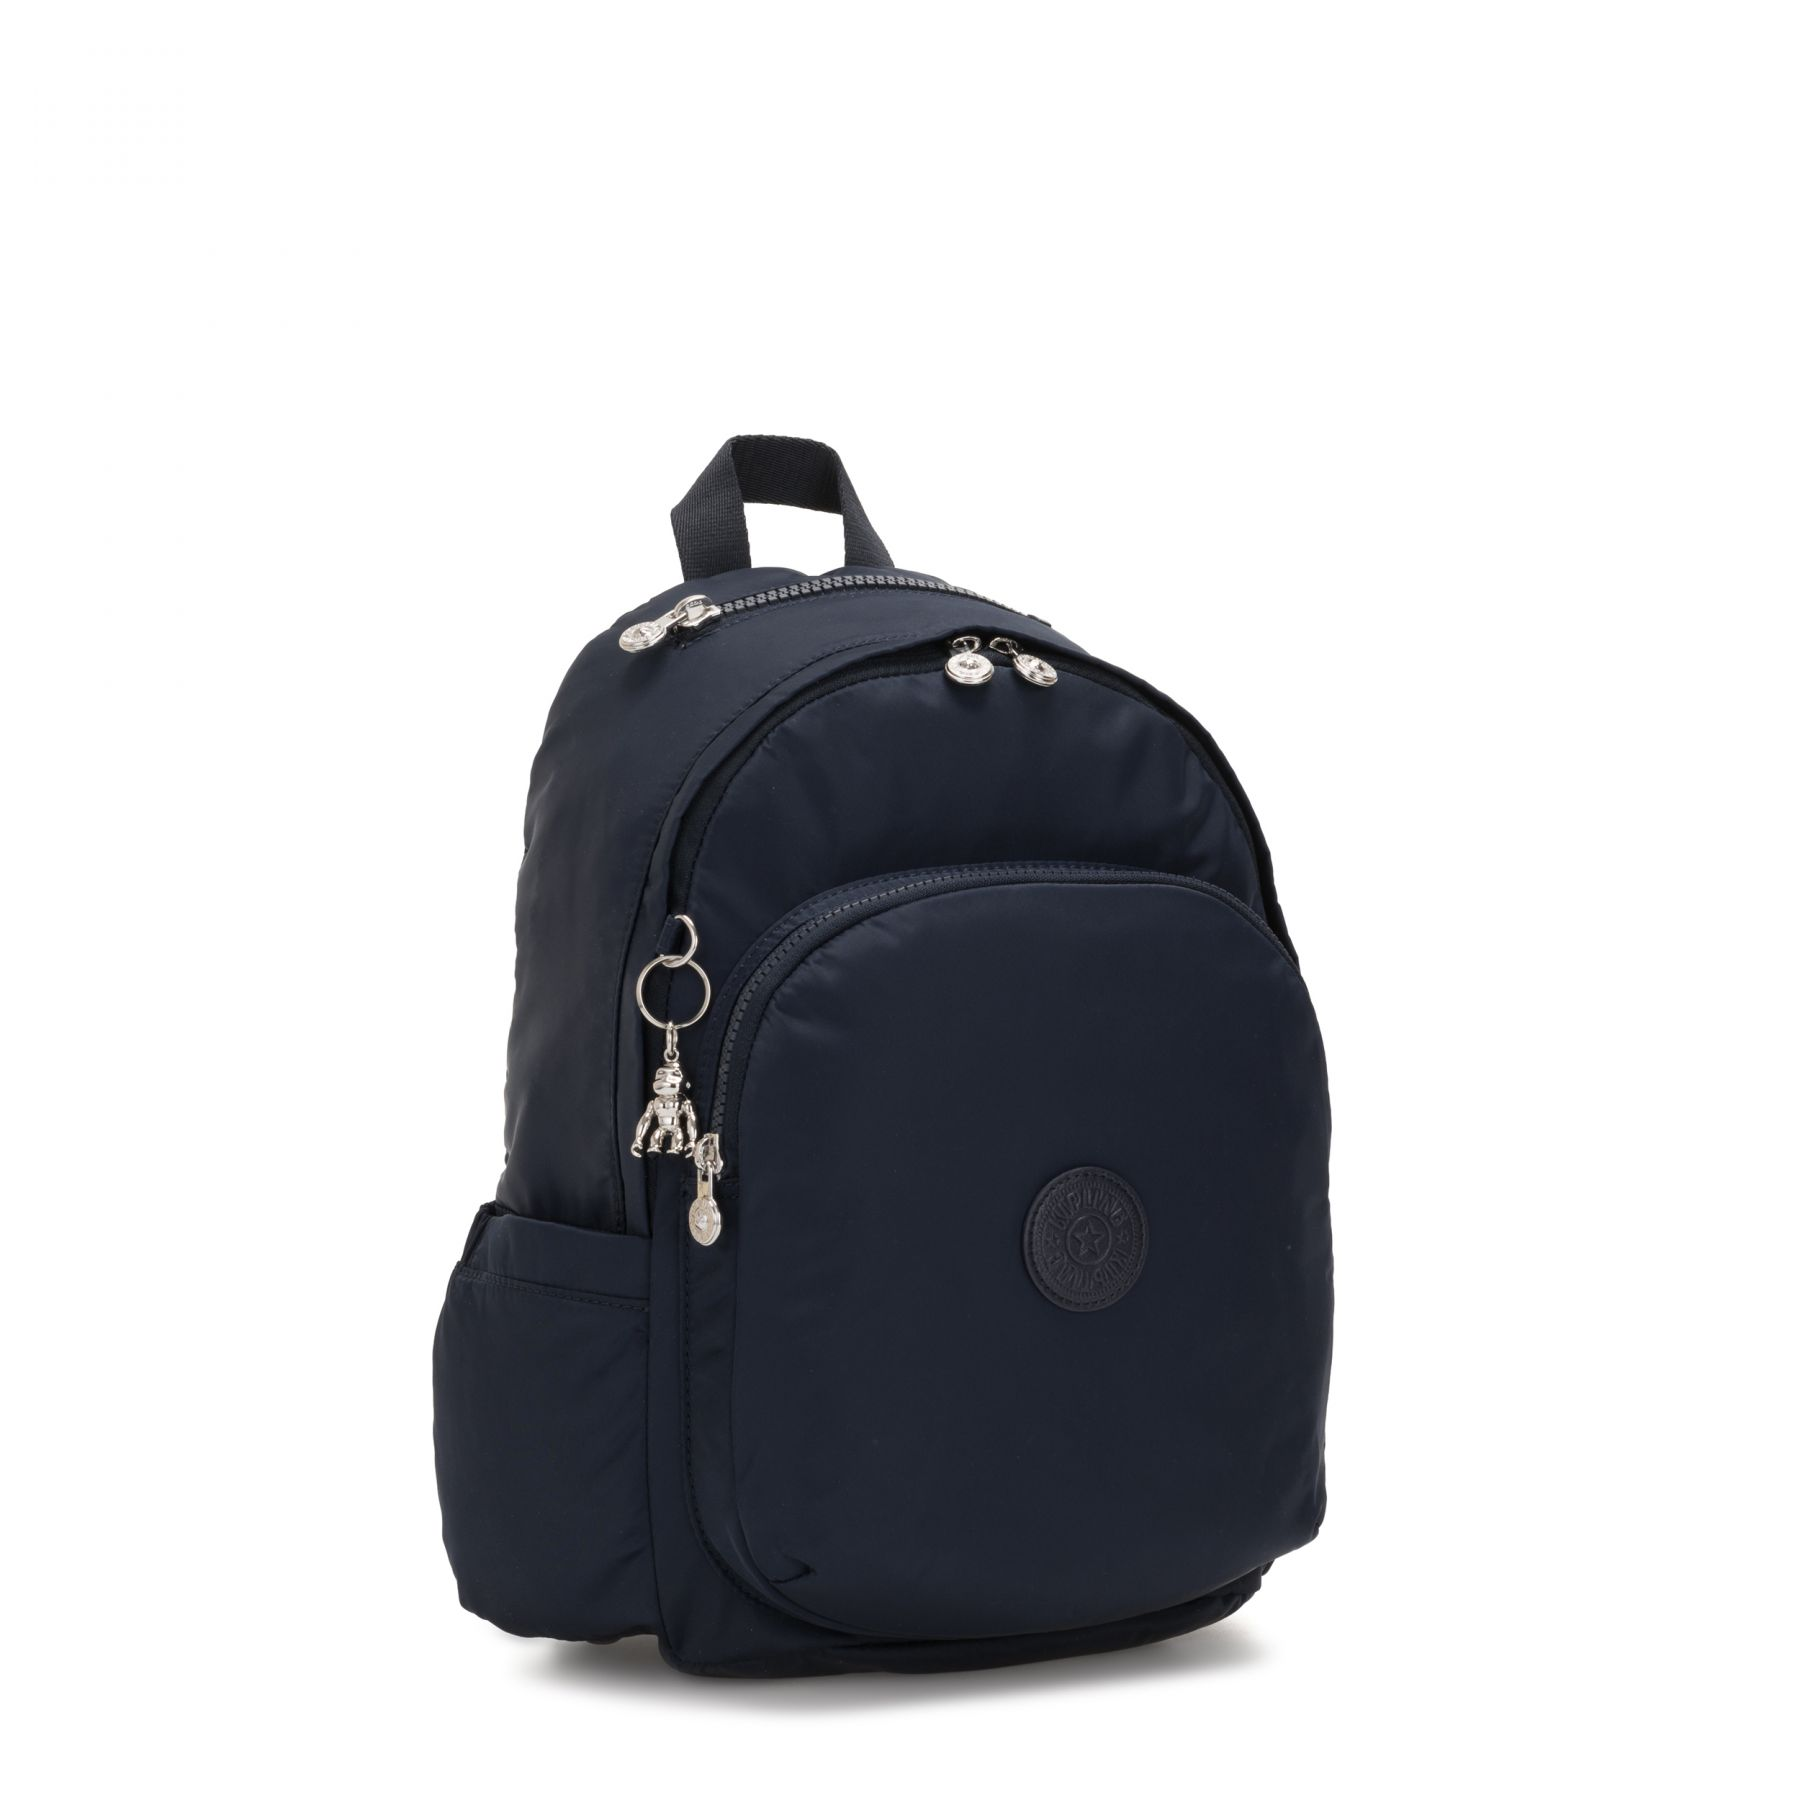 DELIA Latest Backpacks by Kipling - view 4